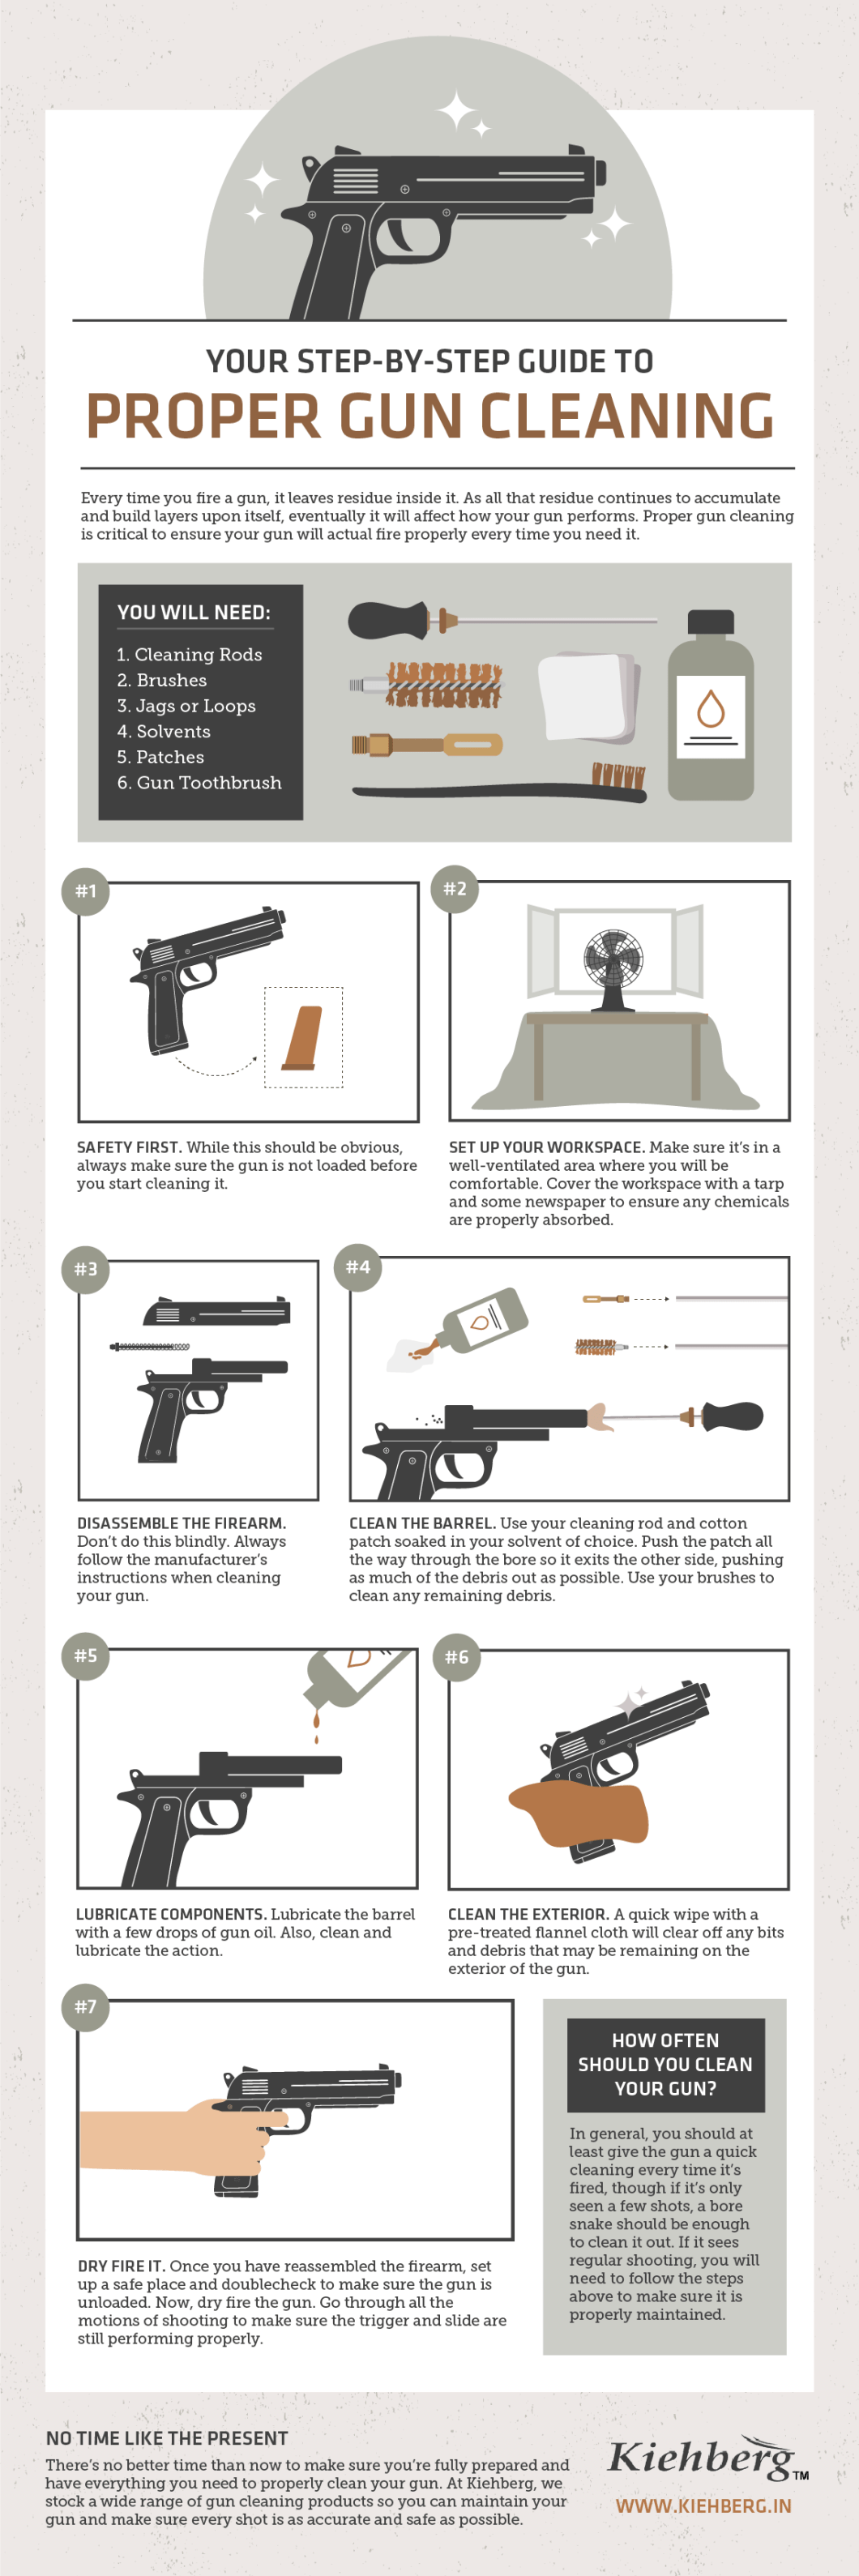 How to Keep Your Gun in Top Working Condition: A Step-by-Step Guide - Infographic